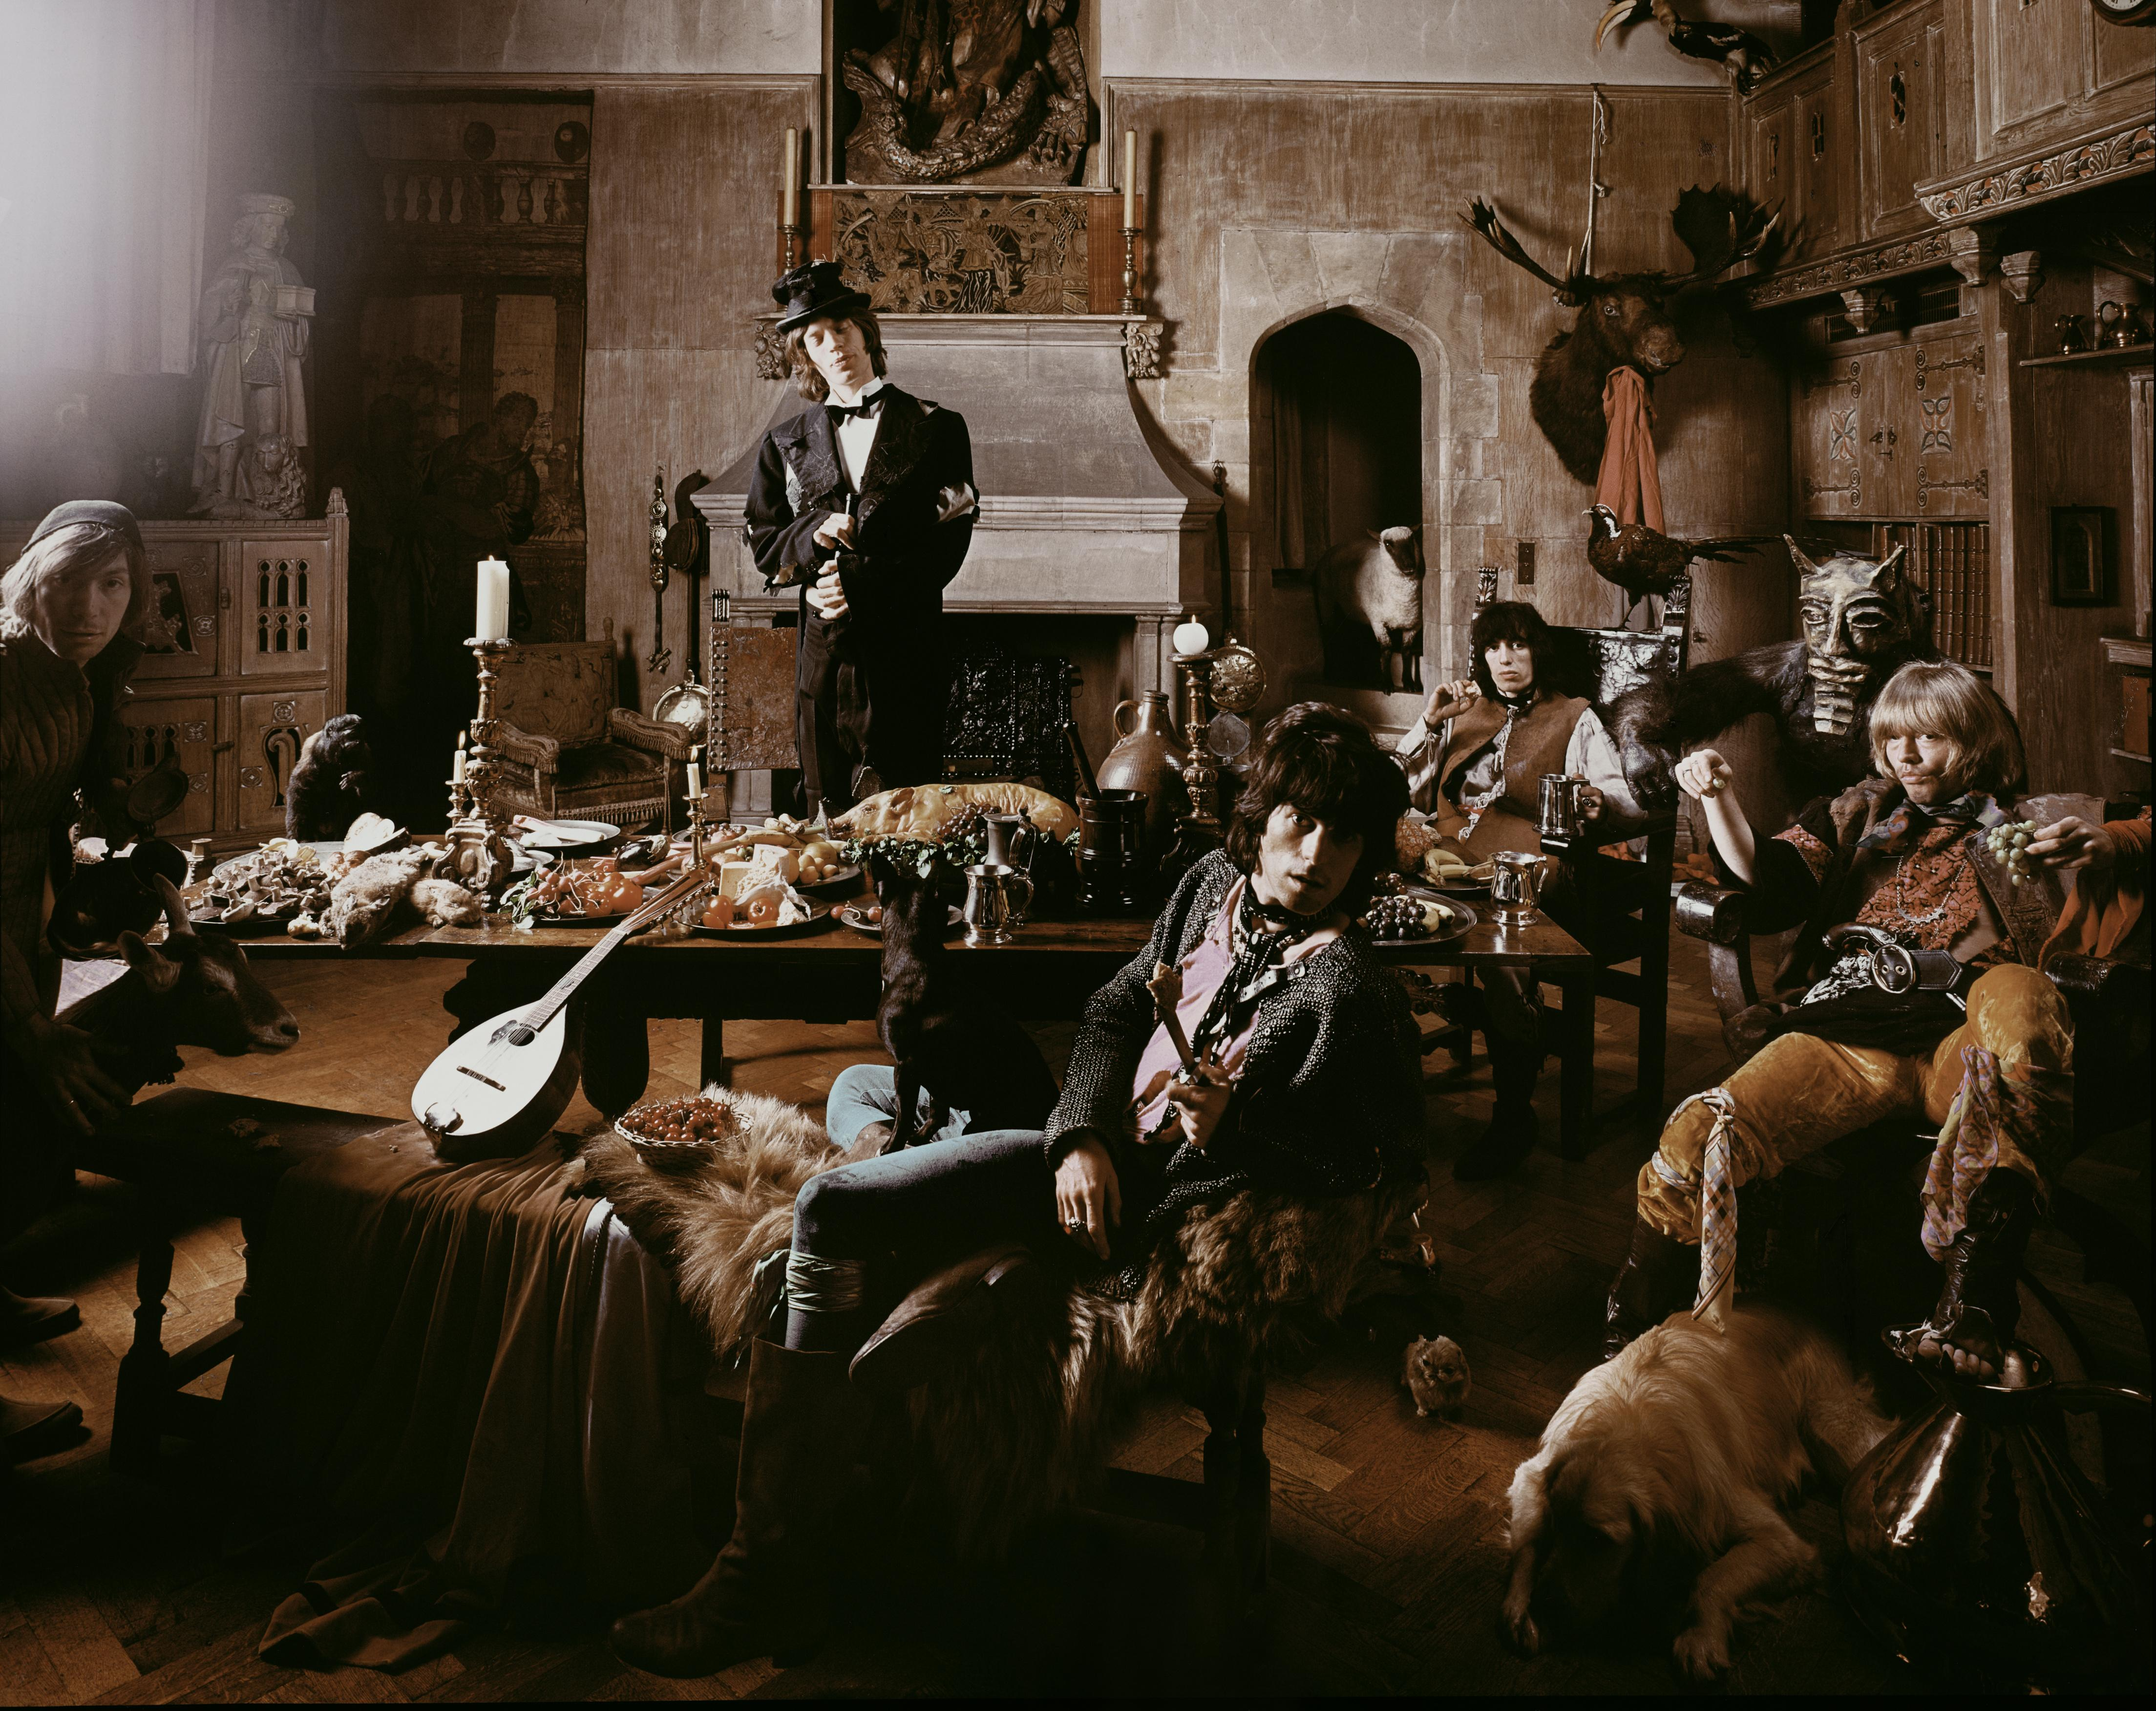 The Rolling Stones' Beggars Banquet: Michael Joseph's best photograph